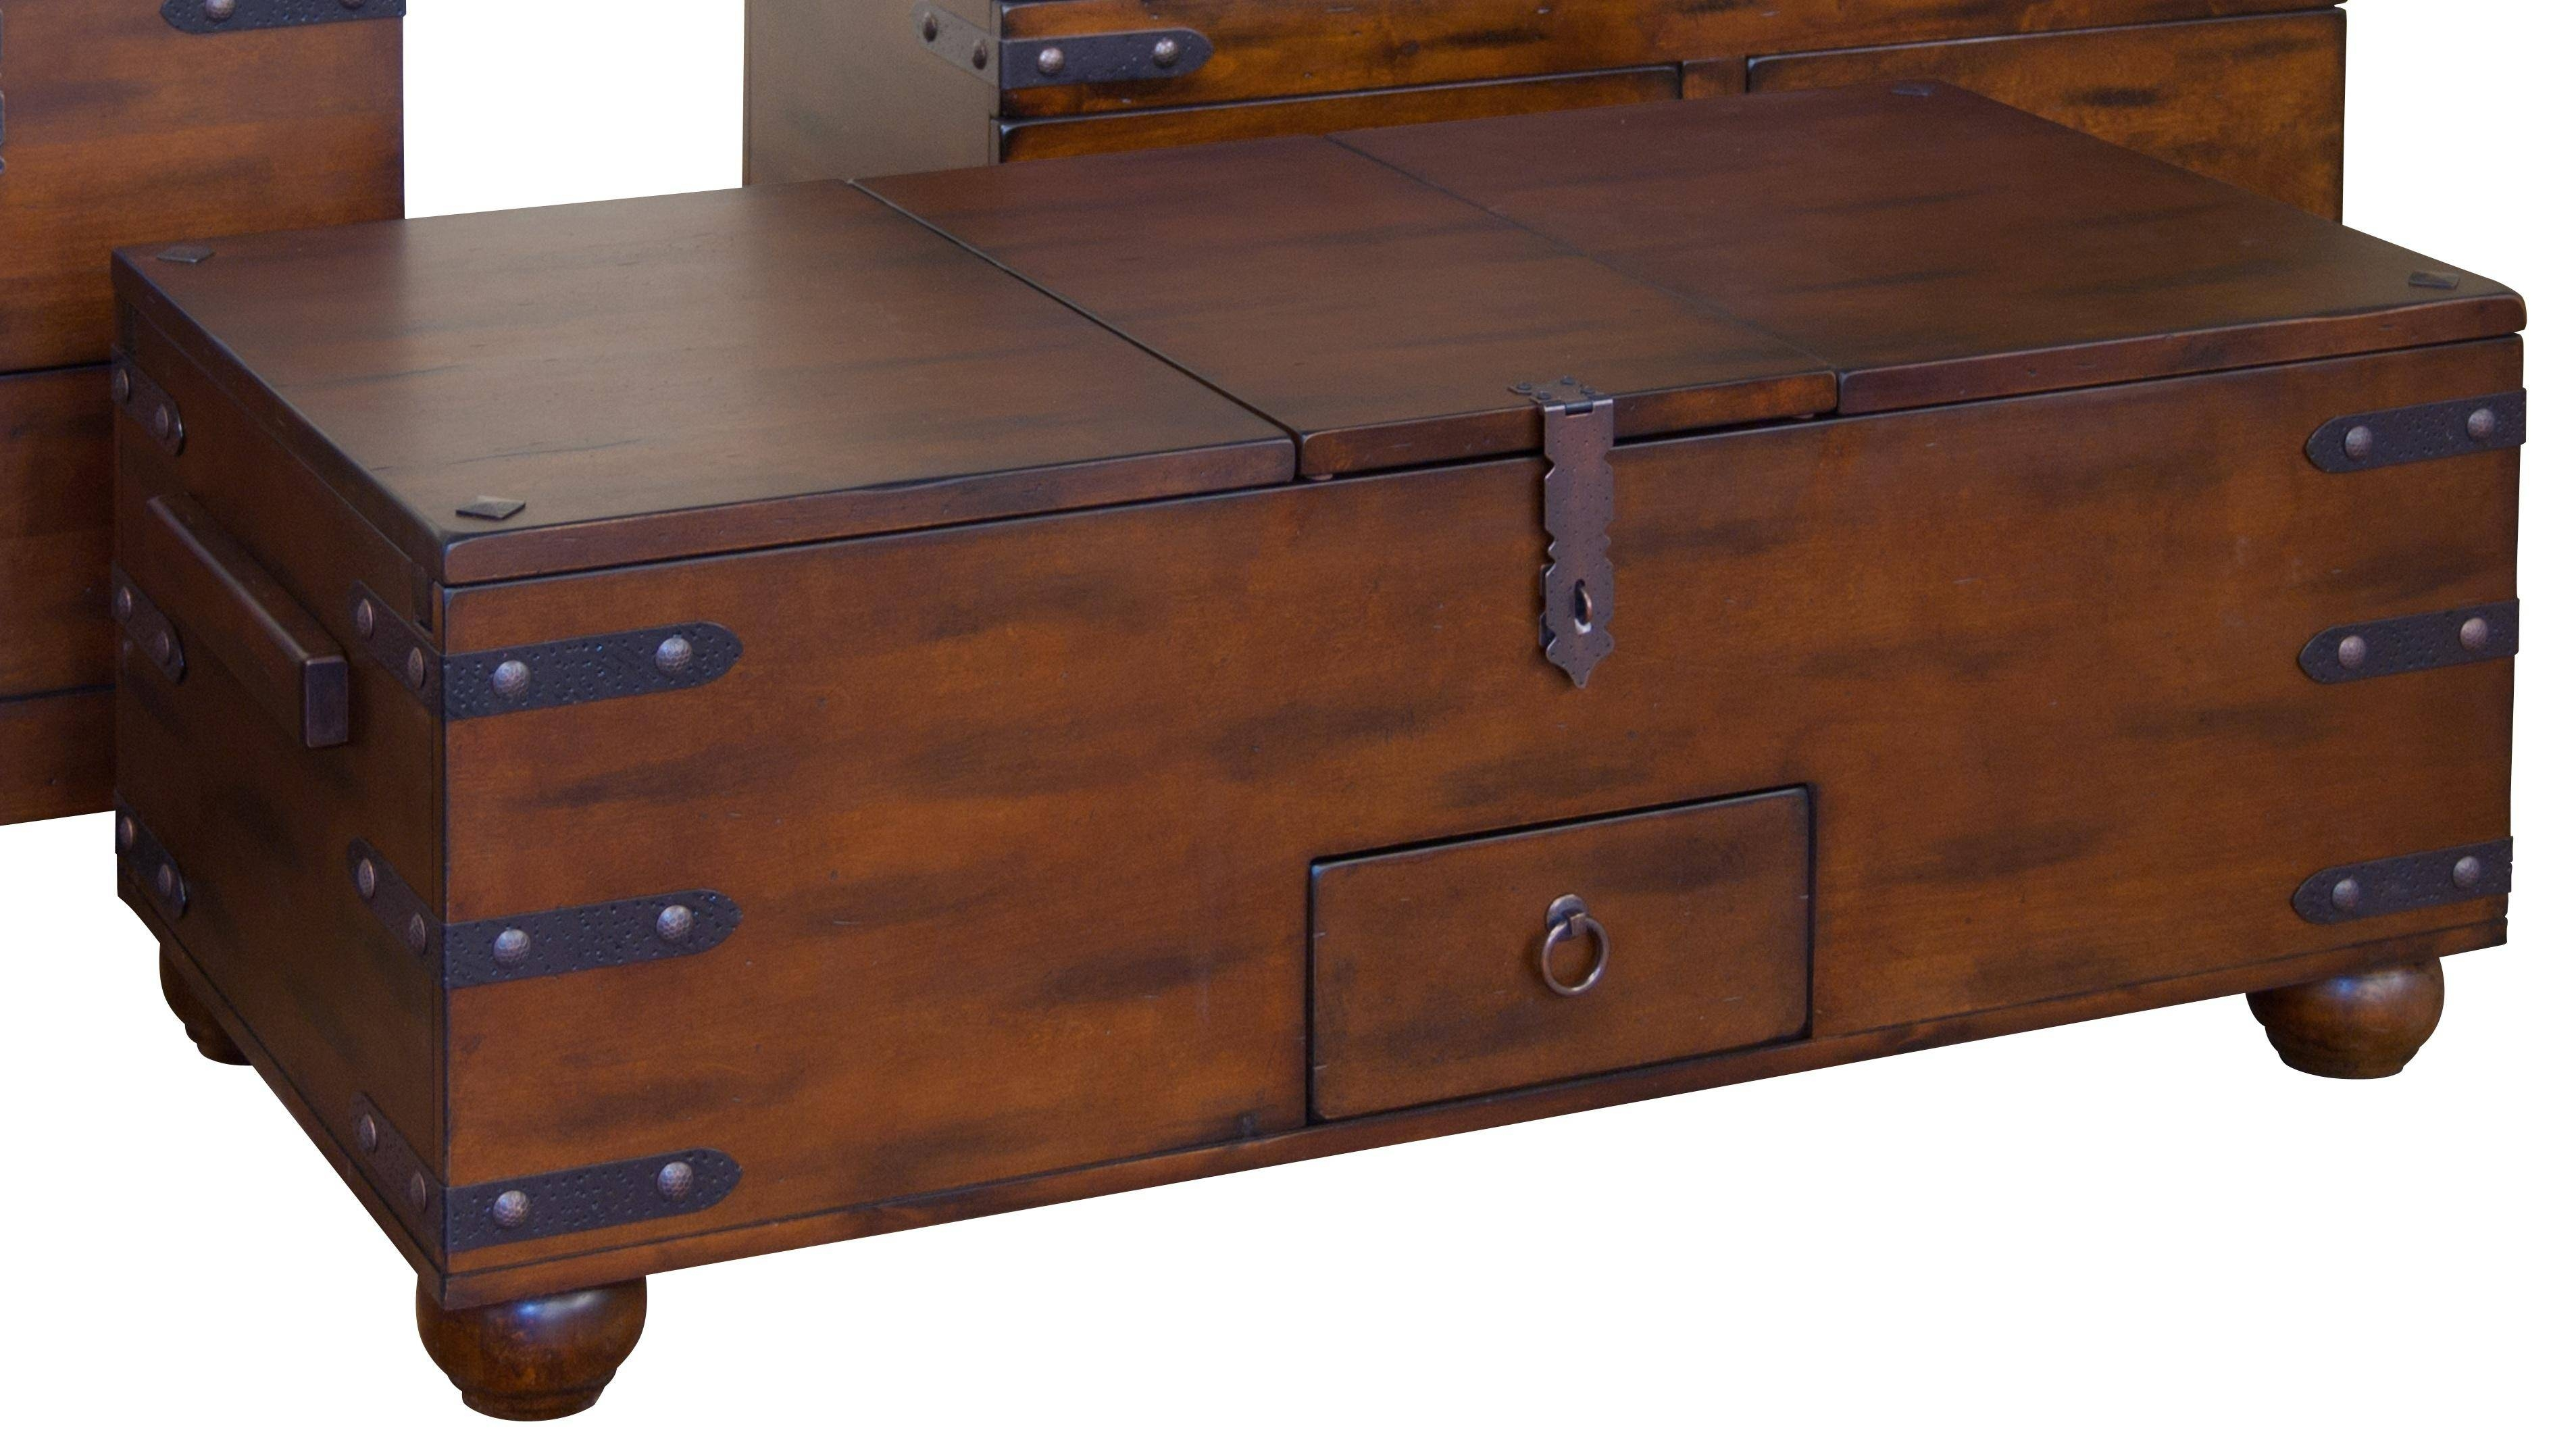 Coffee Table: Popular Storage Trunk Coffee Table Design Ideas inside Trunks Coffee Tables (Image 7 of 30)